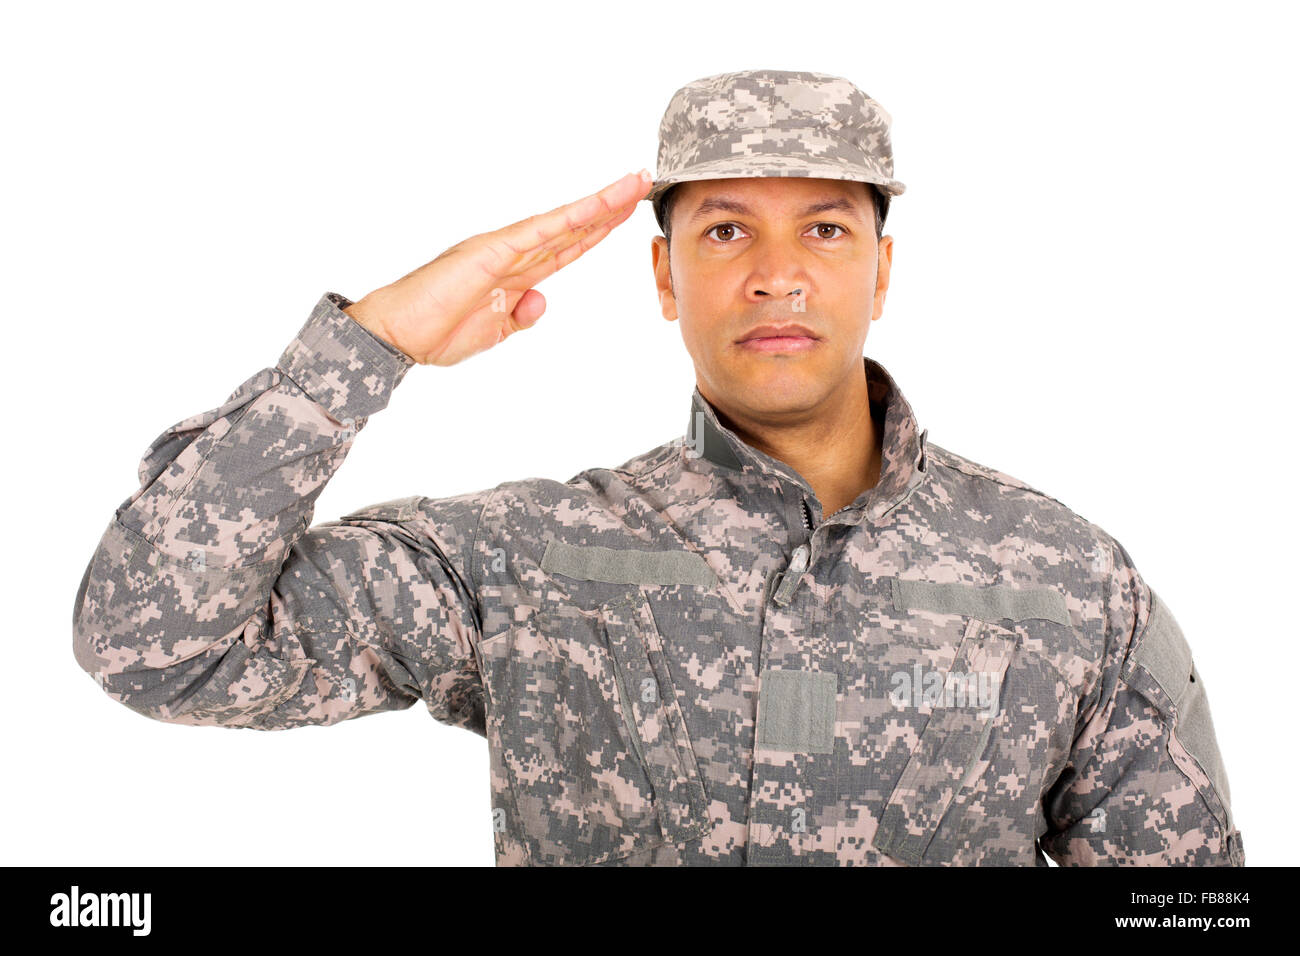 close up portrait of military soldier saluting - Stock Image